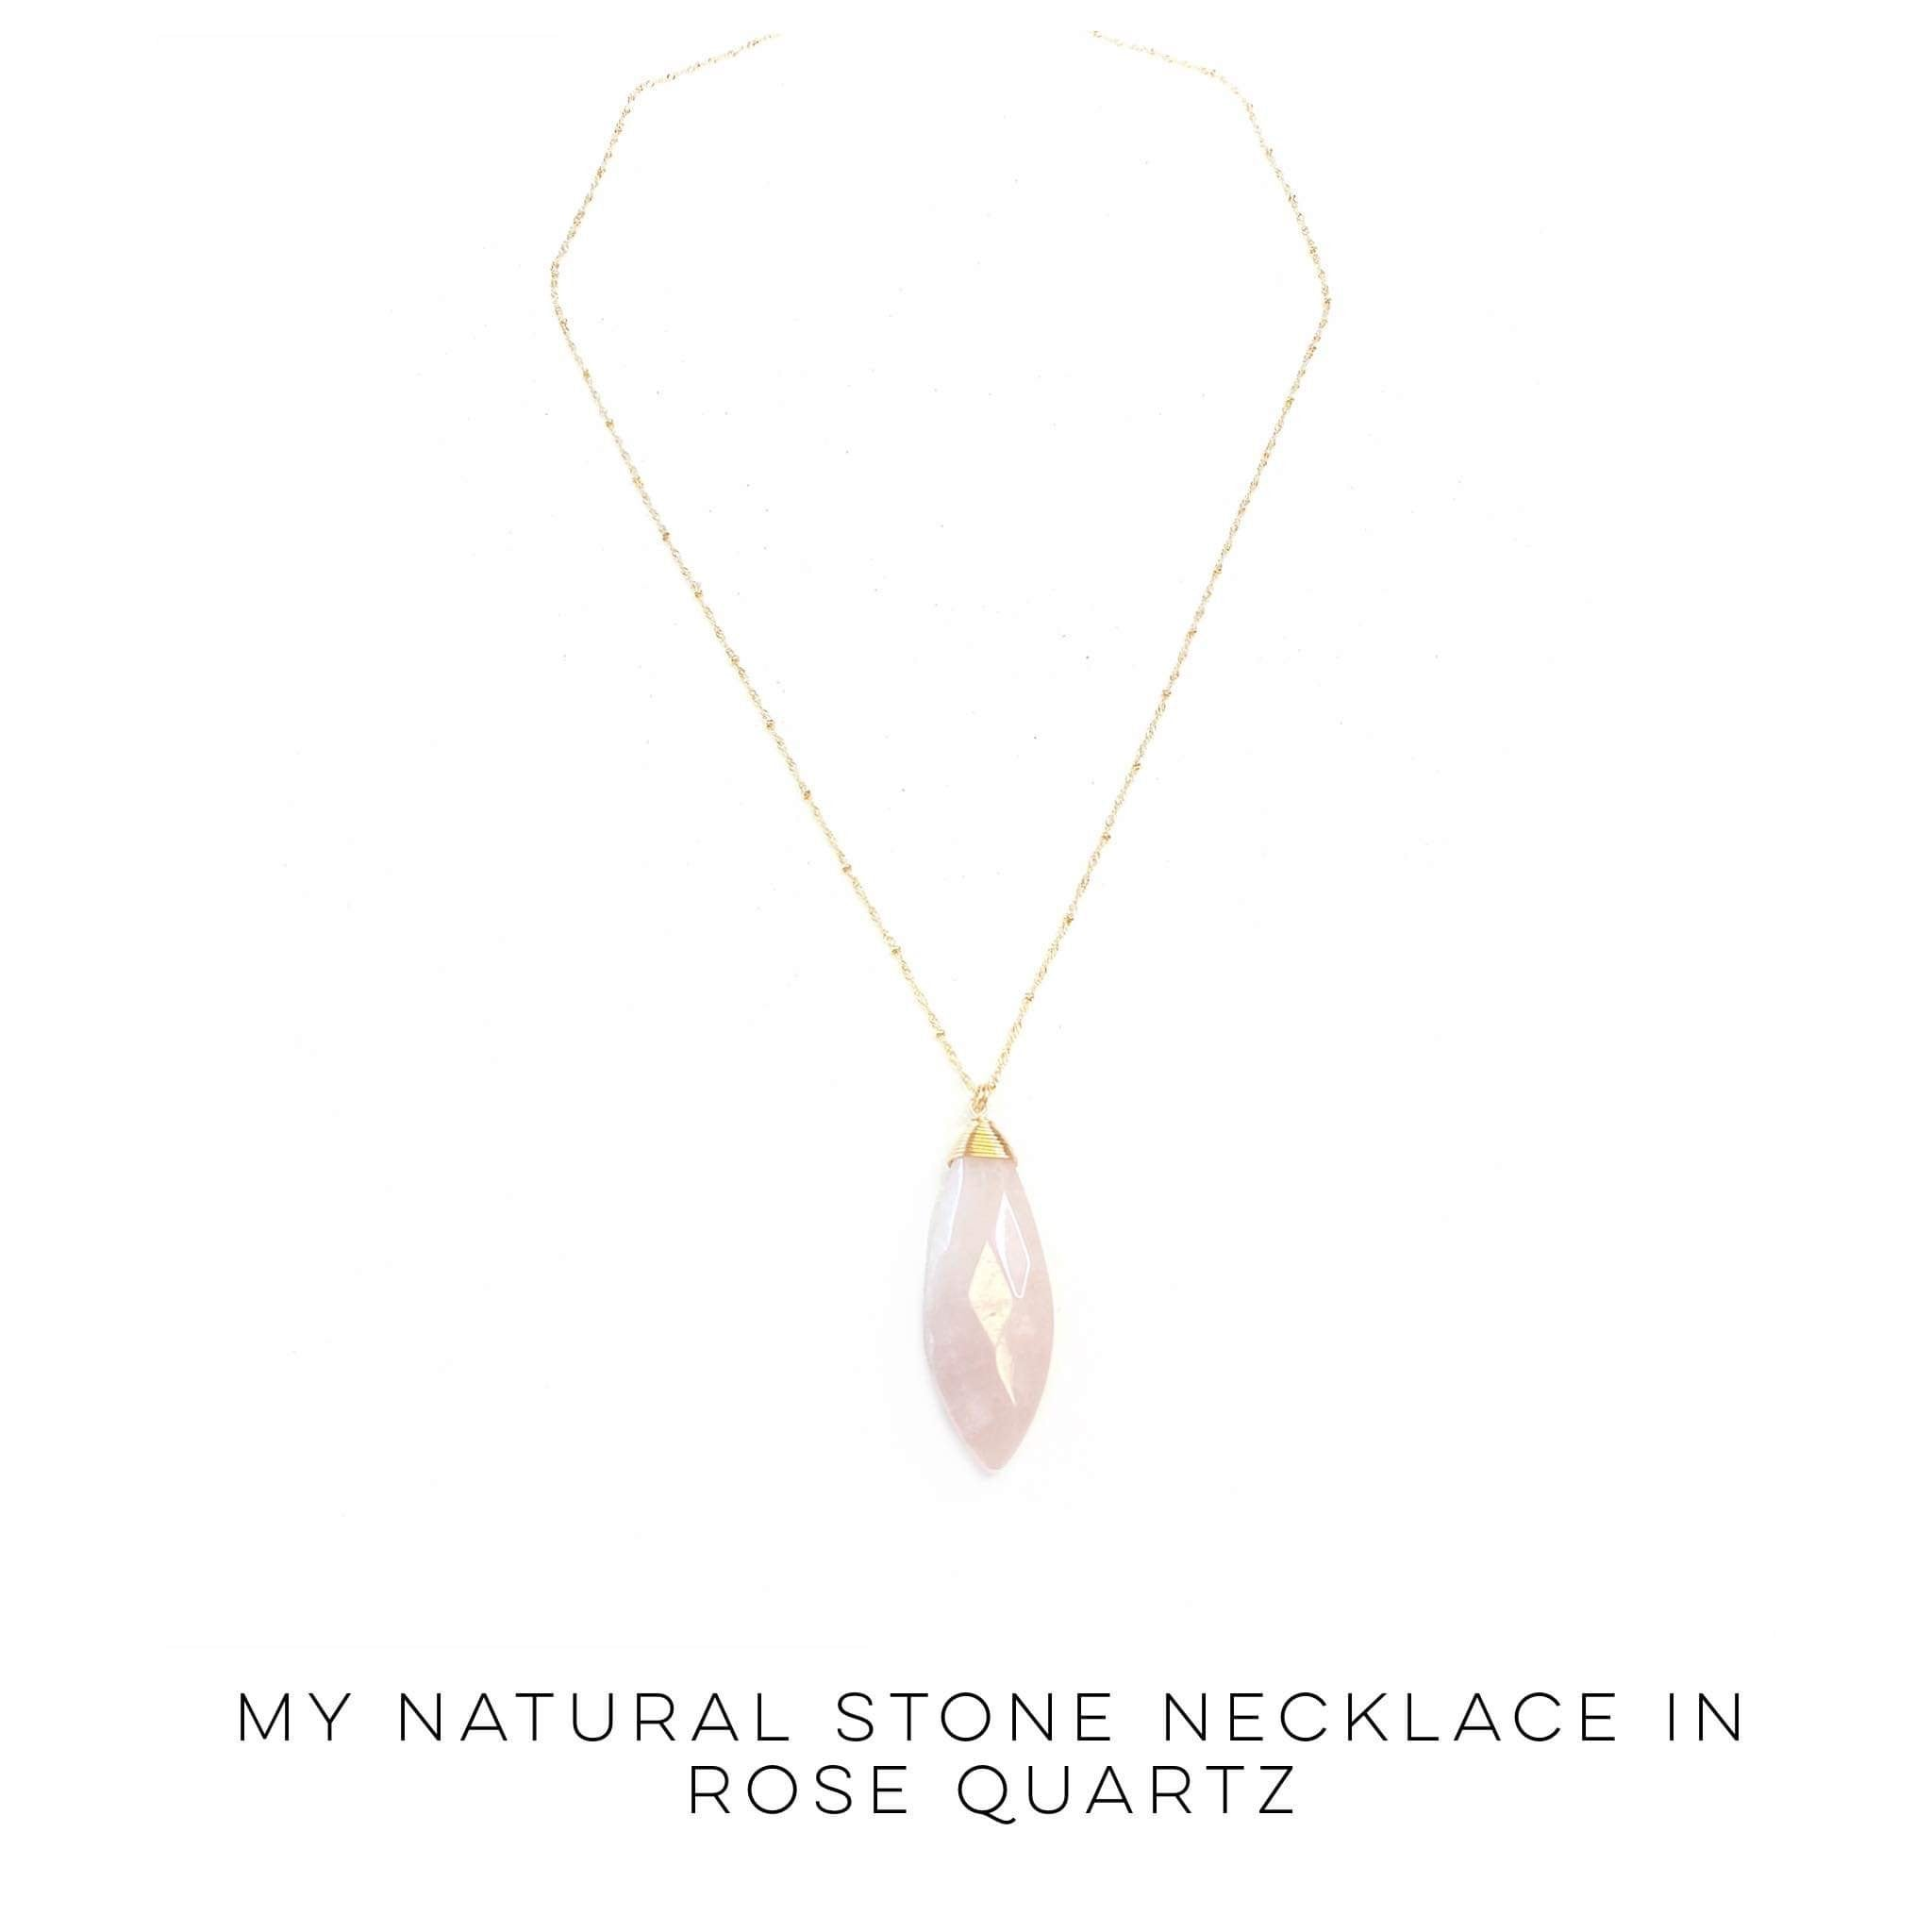 My Natural Stone Necklace in Rose Quartz